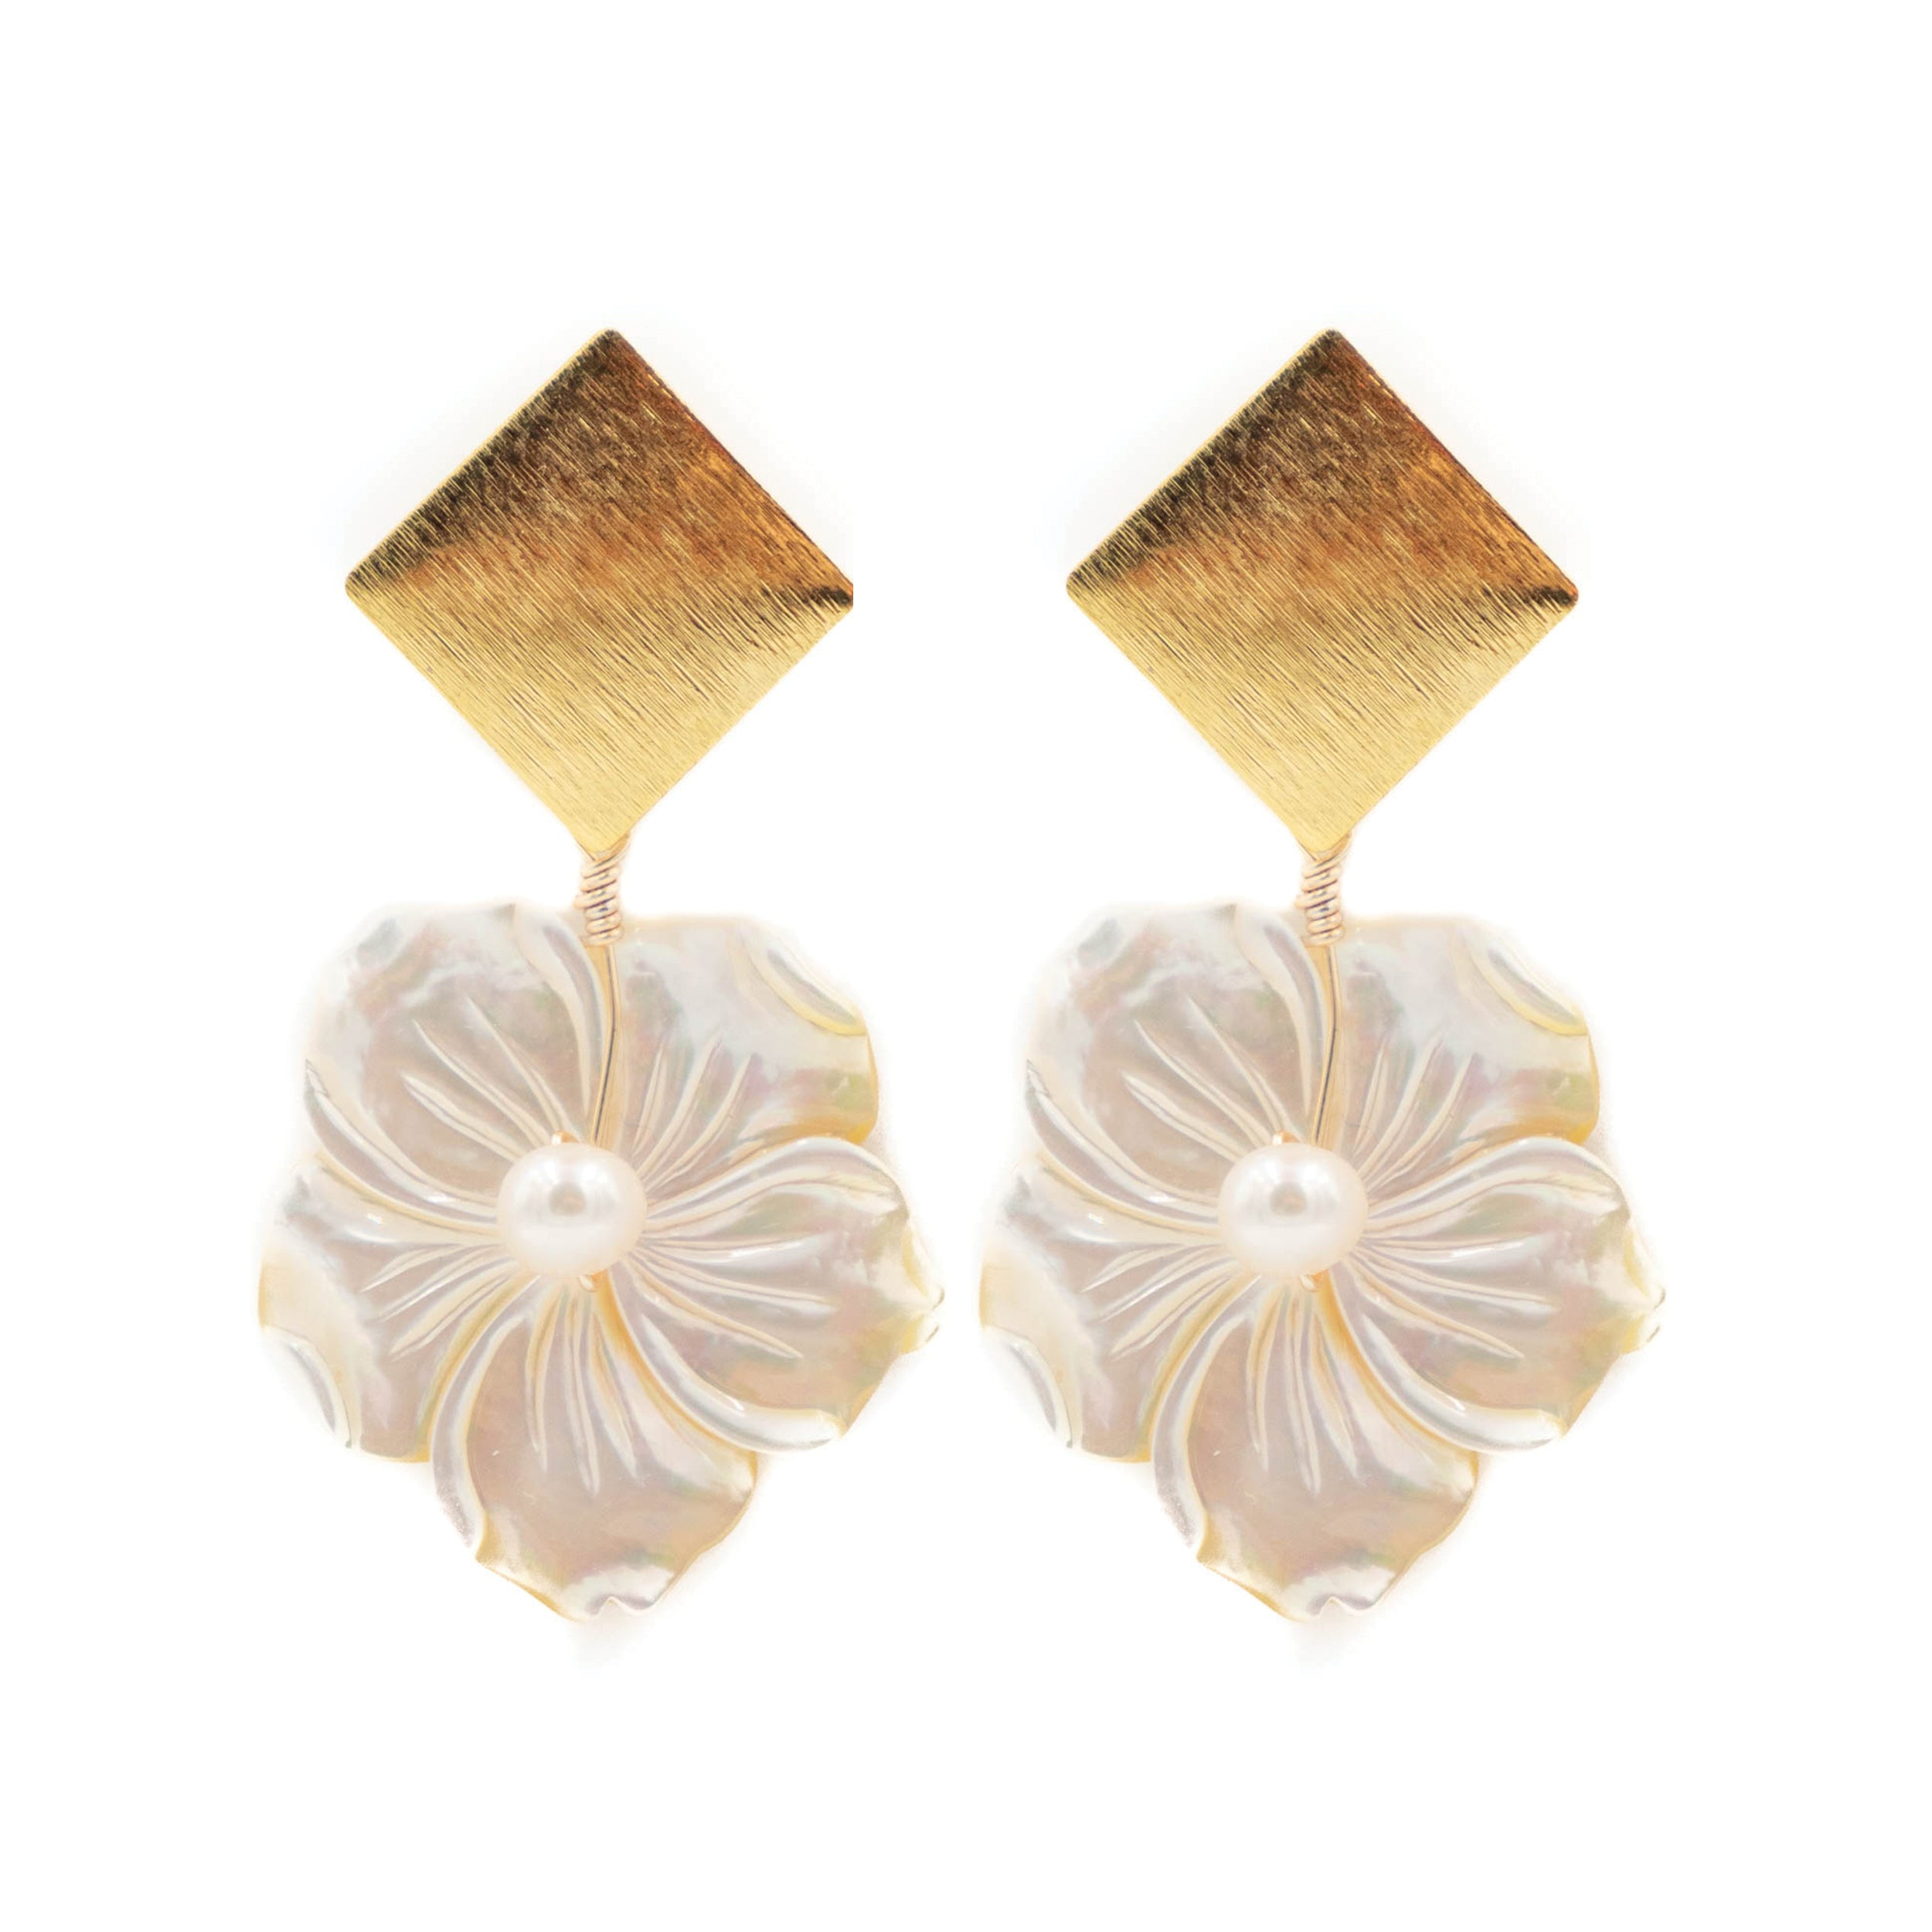 Darby Earring, Flower